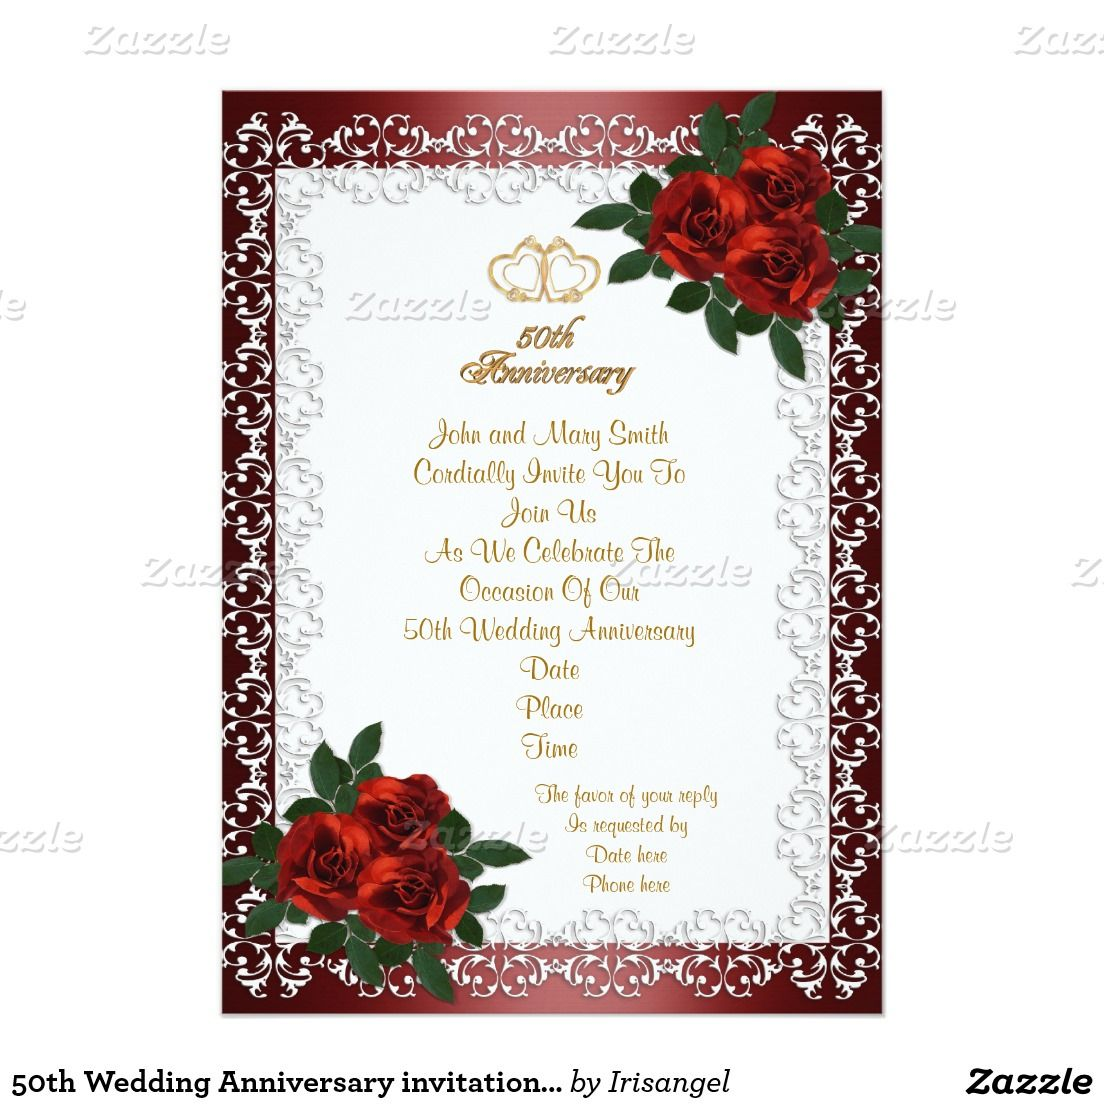 50th wedding anniversary invitation red roses 5 x 7 invitation 50th wedding anniversary invitation red roses 5 x 7 invitation card stopboris Images